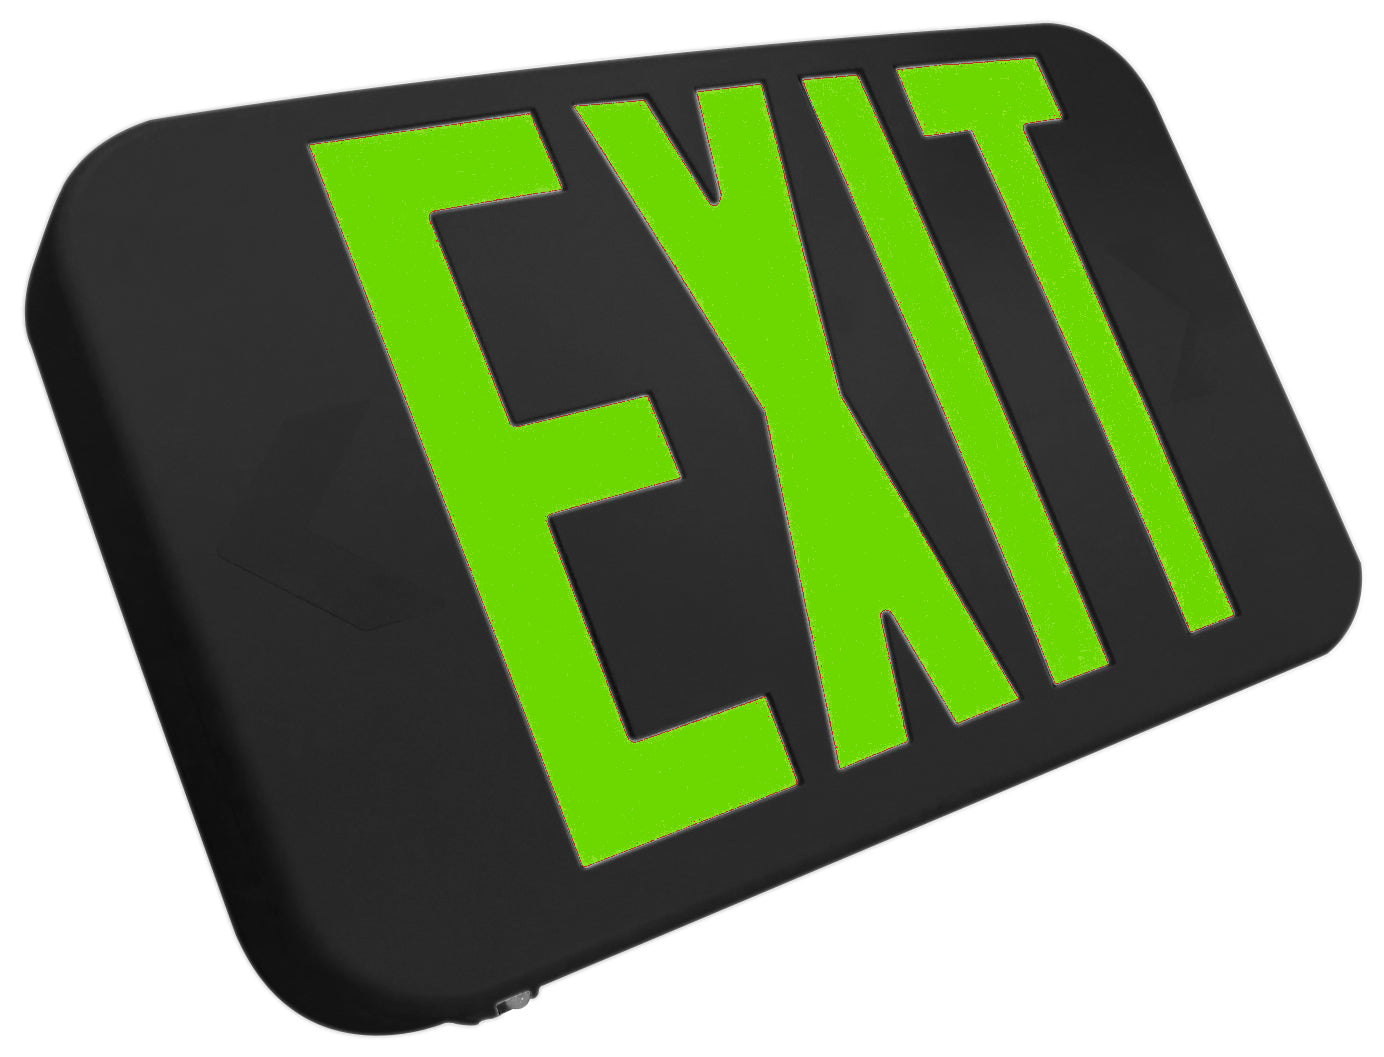 Exit Sign LED - Compact Thermoplastic